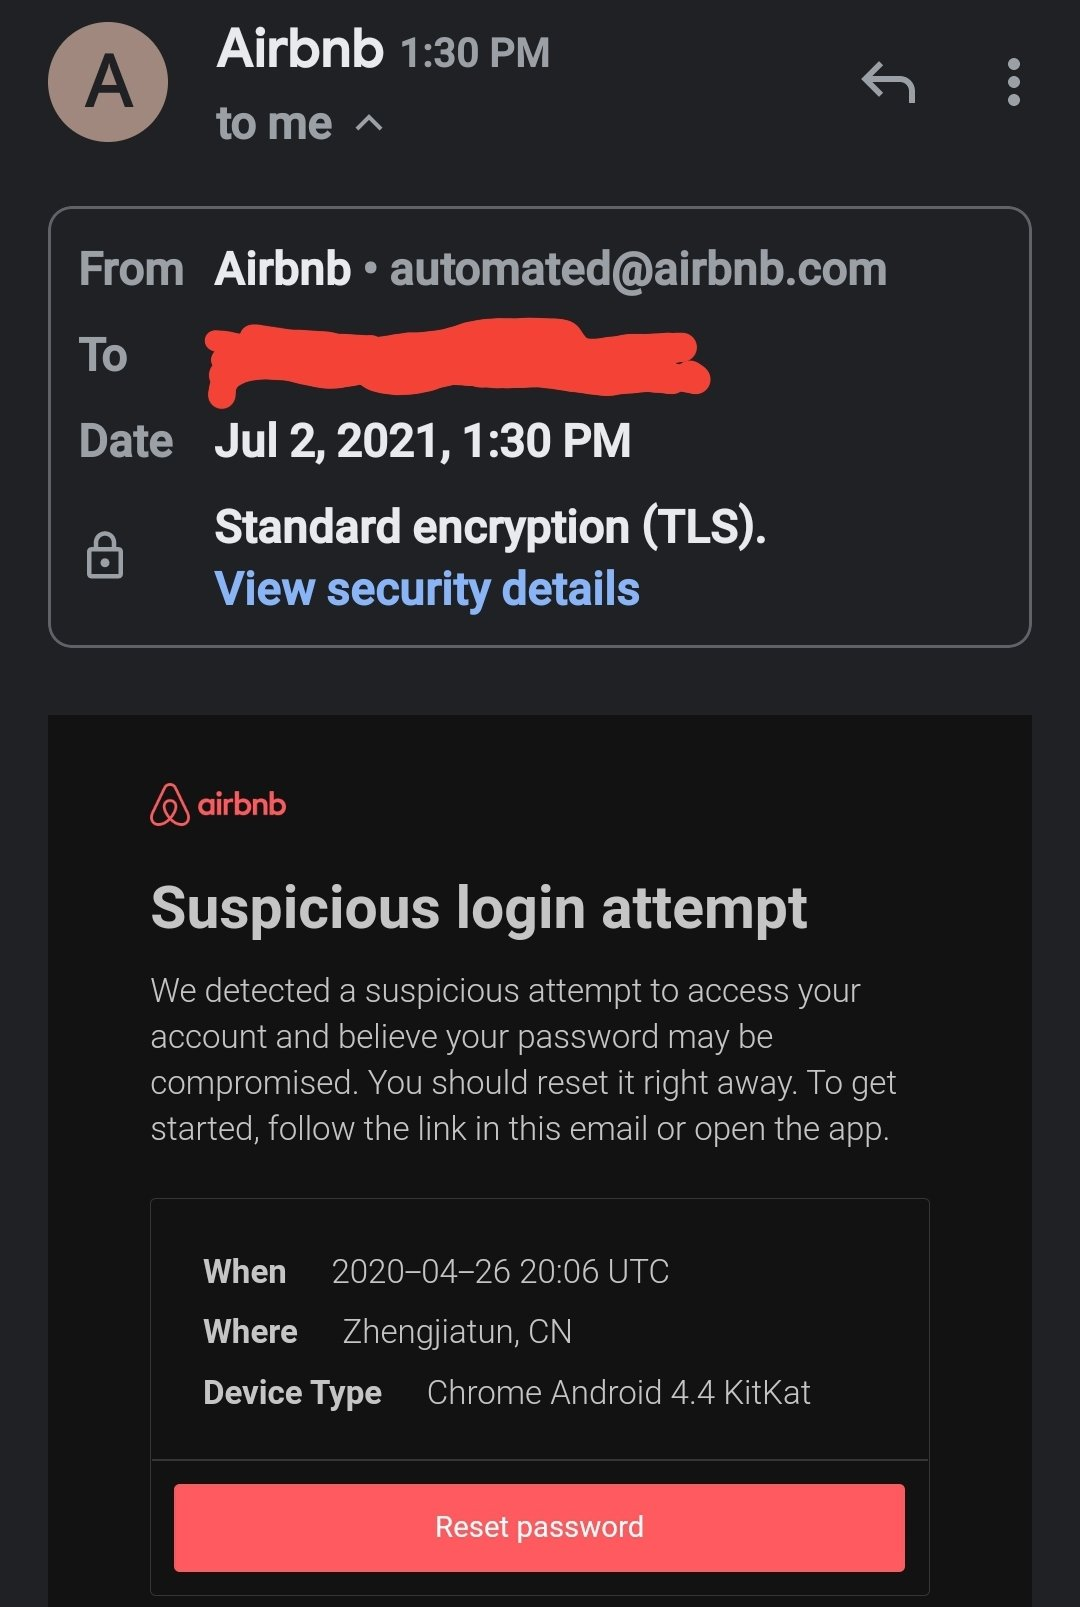 rt-b3ckdotcom-airbnb-airbnbhelp-wow-thank-you-for-letting-me-know-this-so-quickly-%f0%9f%98%95-https-t-co-wynfxwfg8m